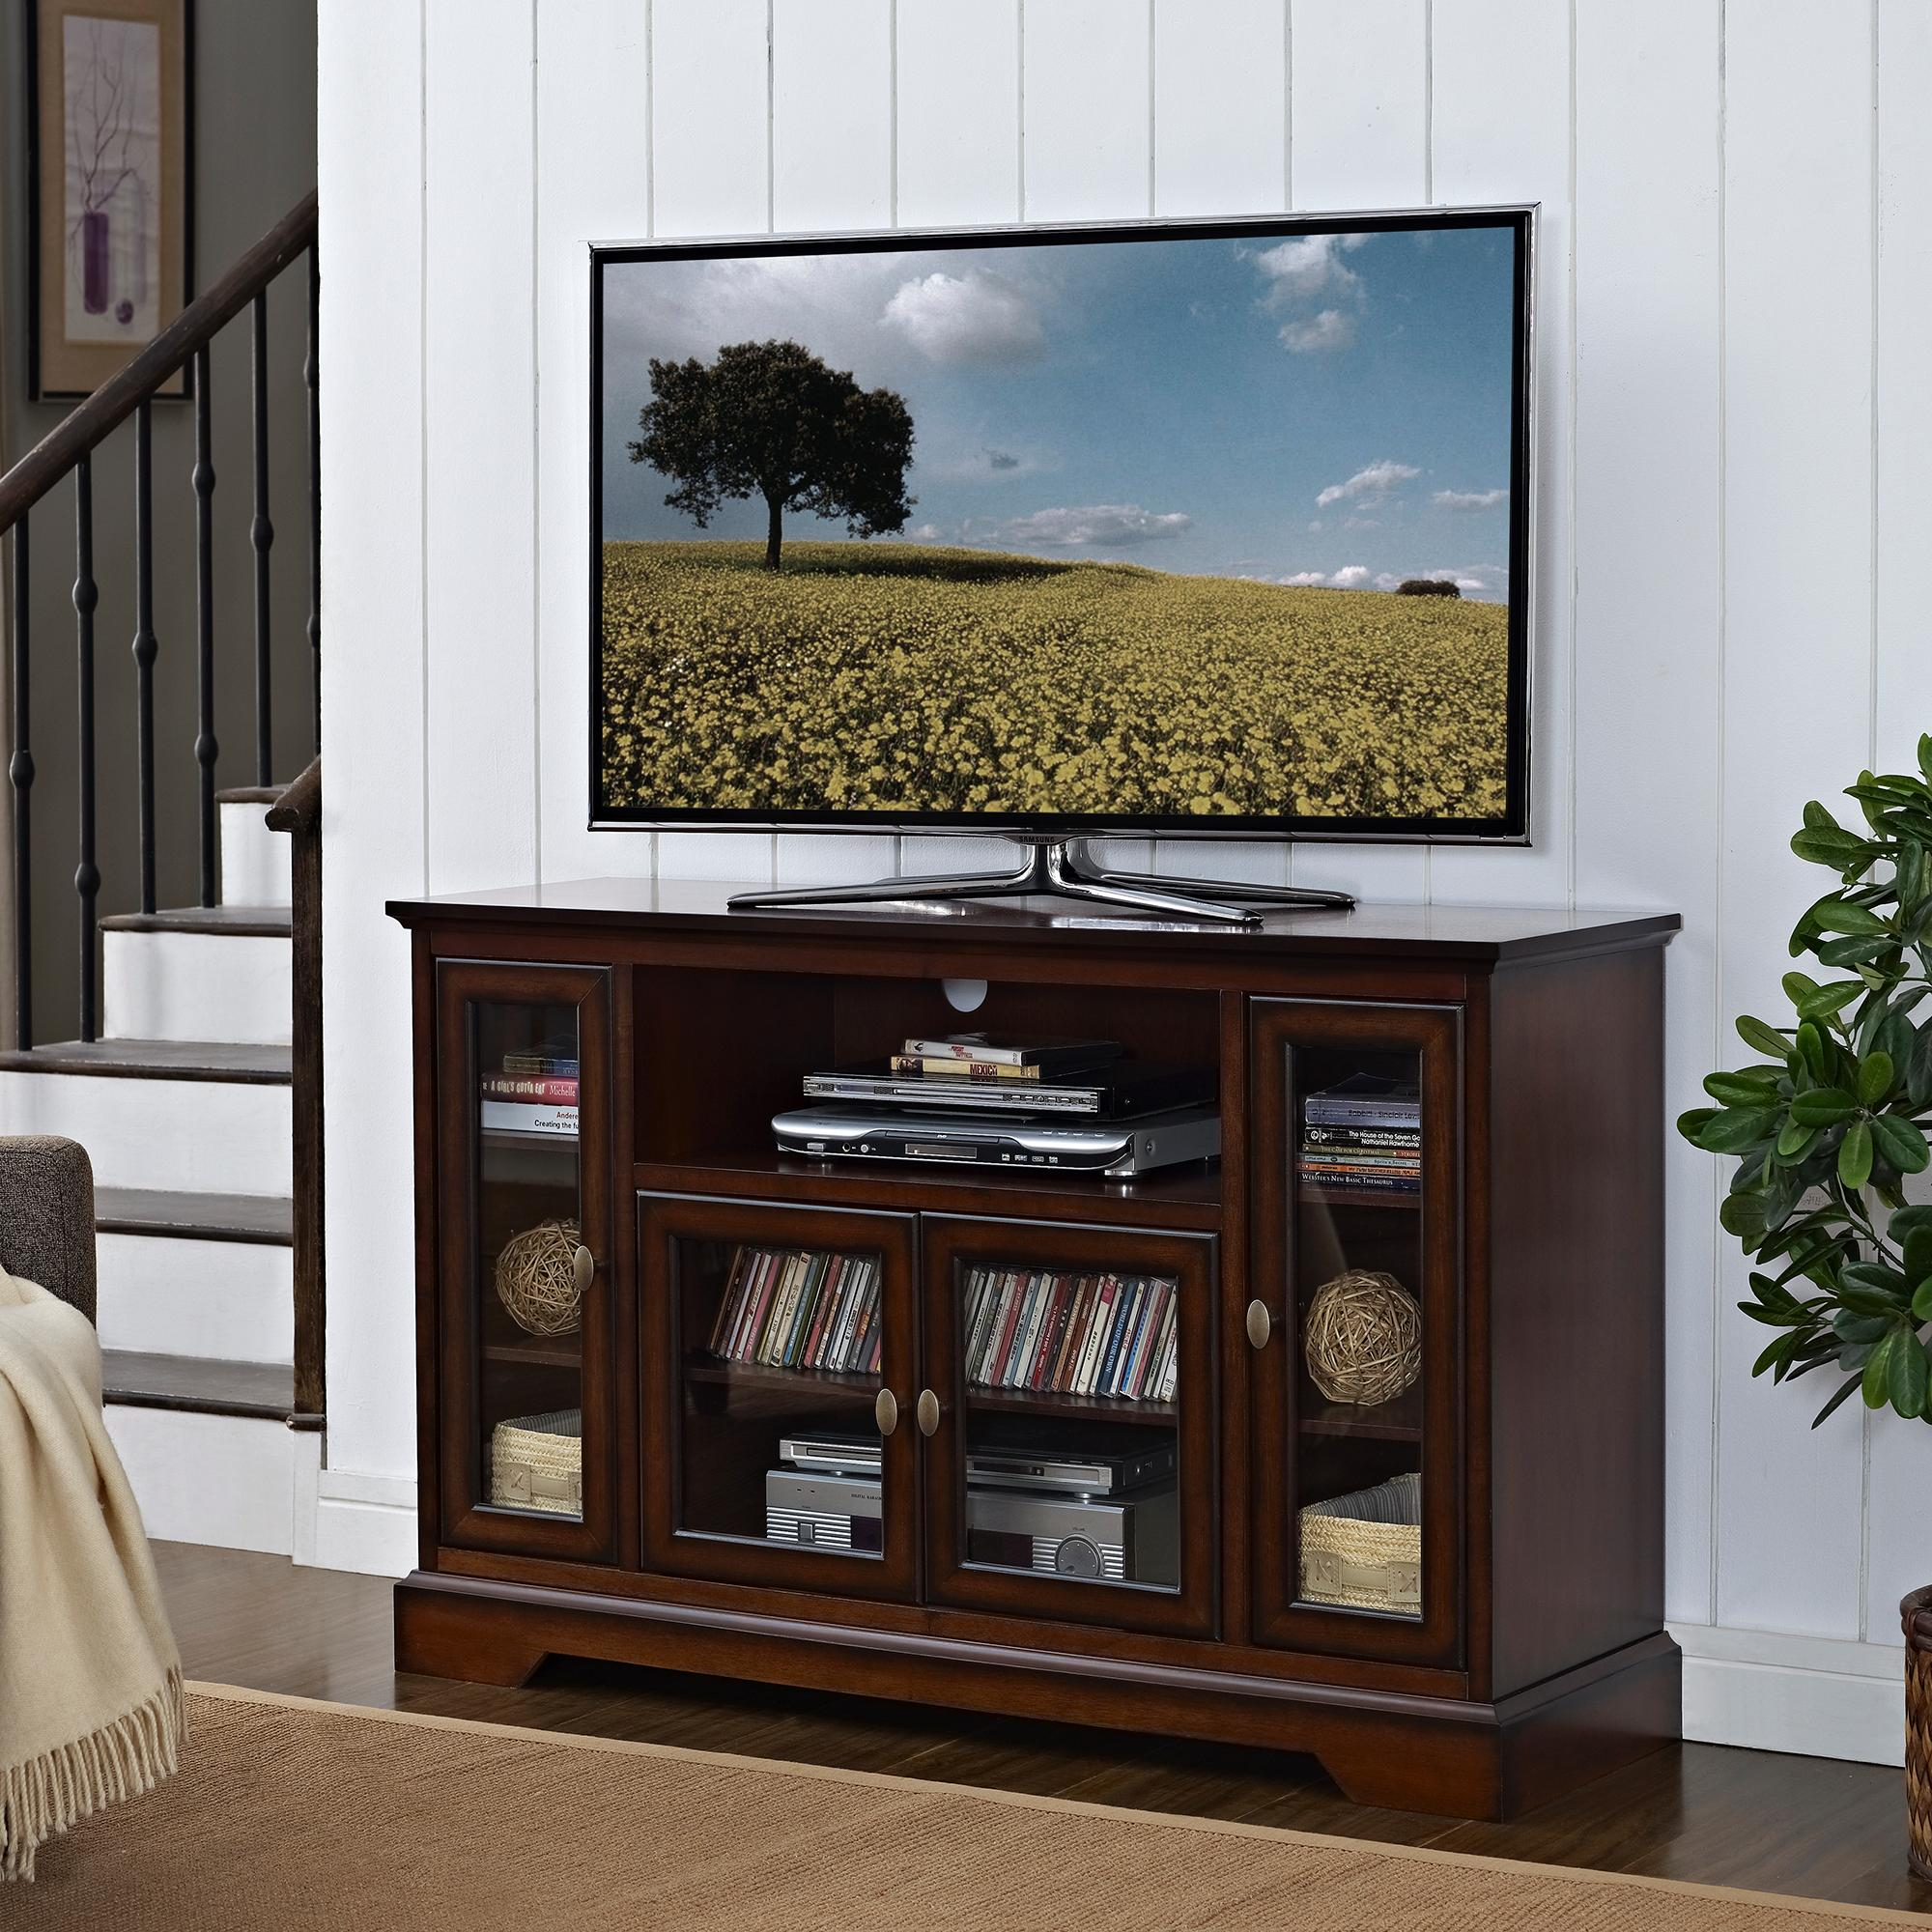 Highboy Wood TV Stand, 52-Inch, Antique Brown - Television Stands